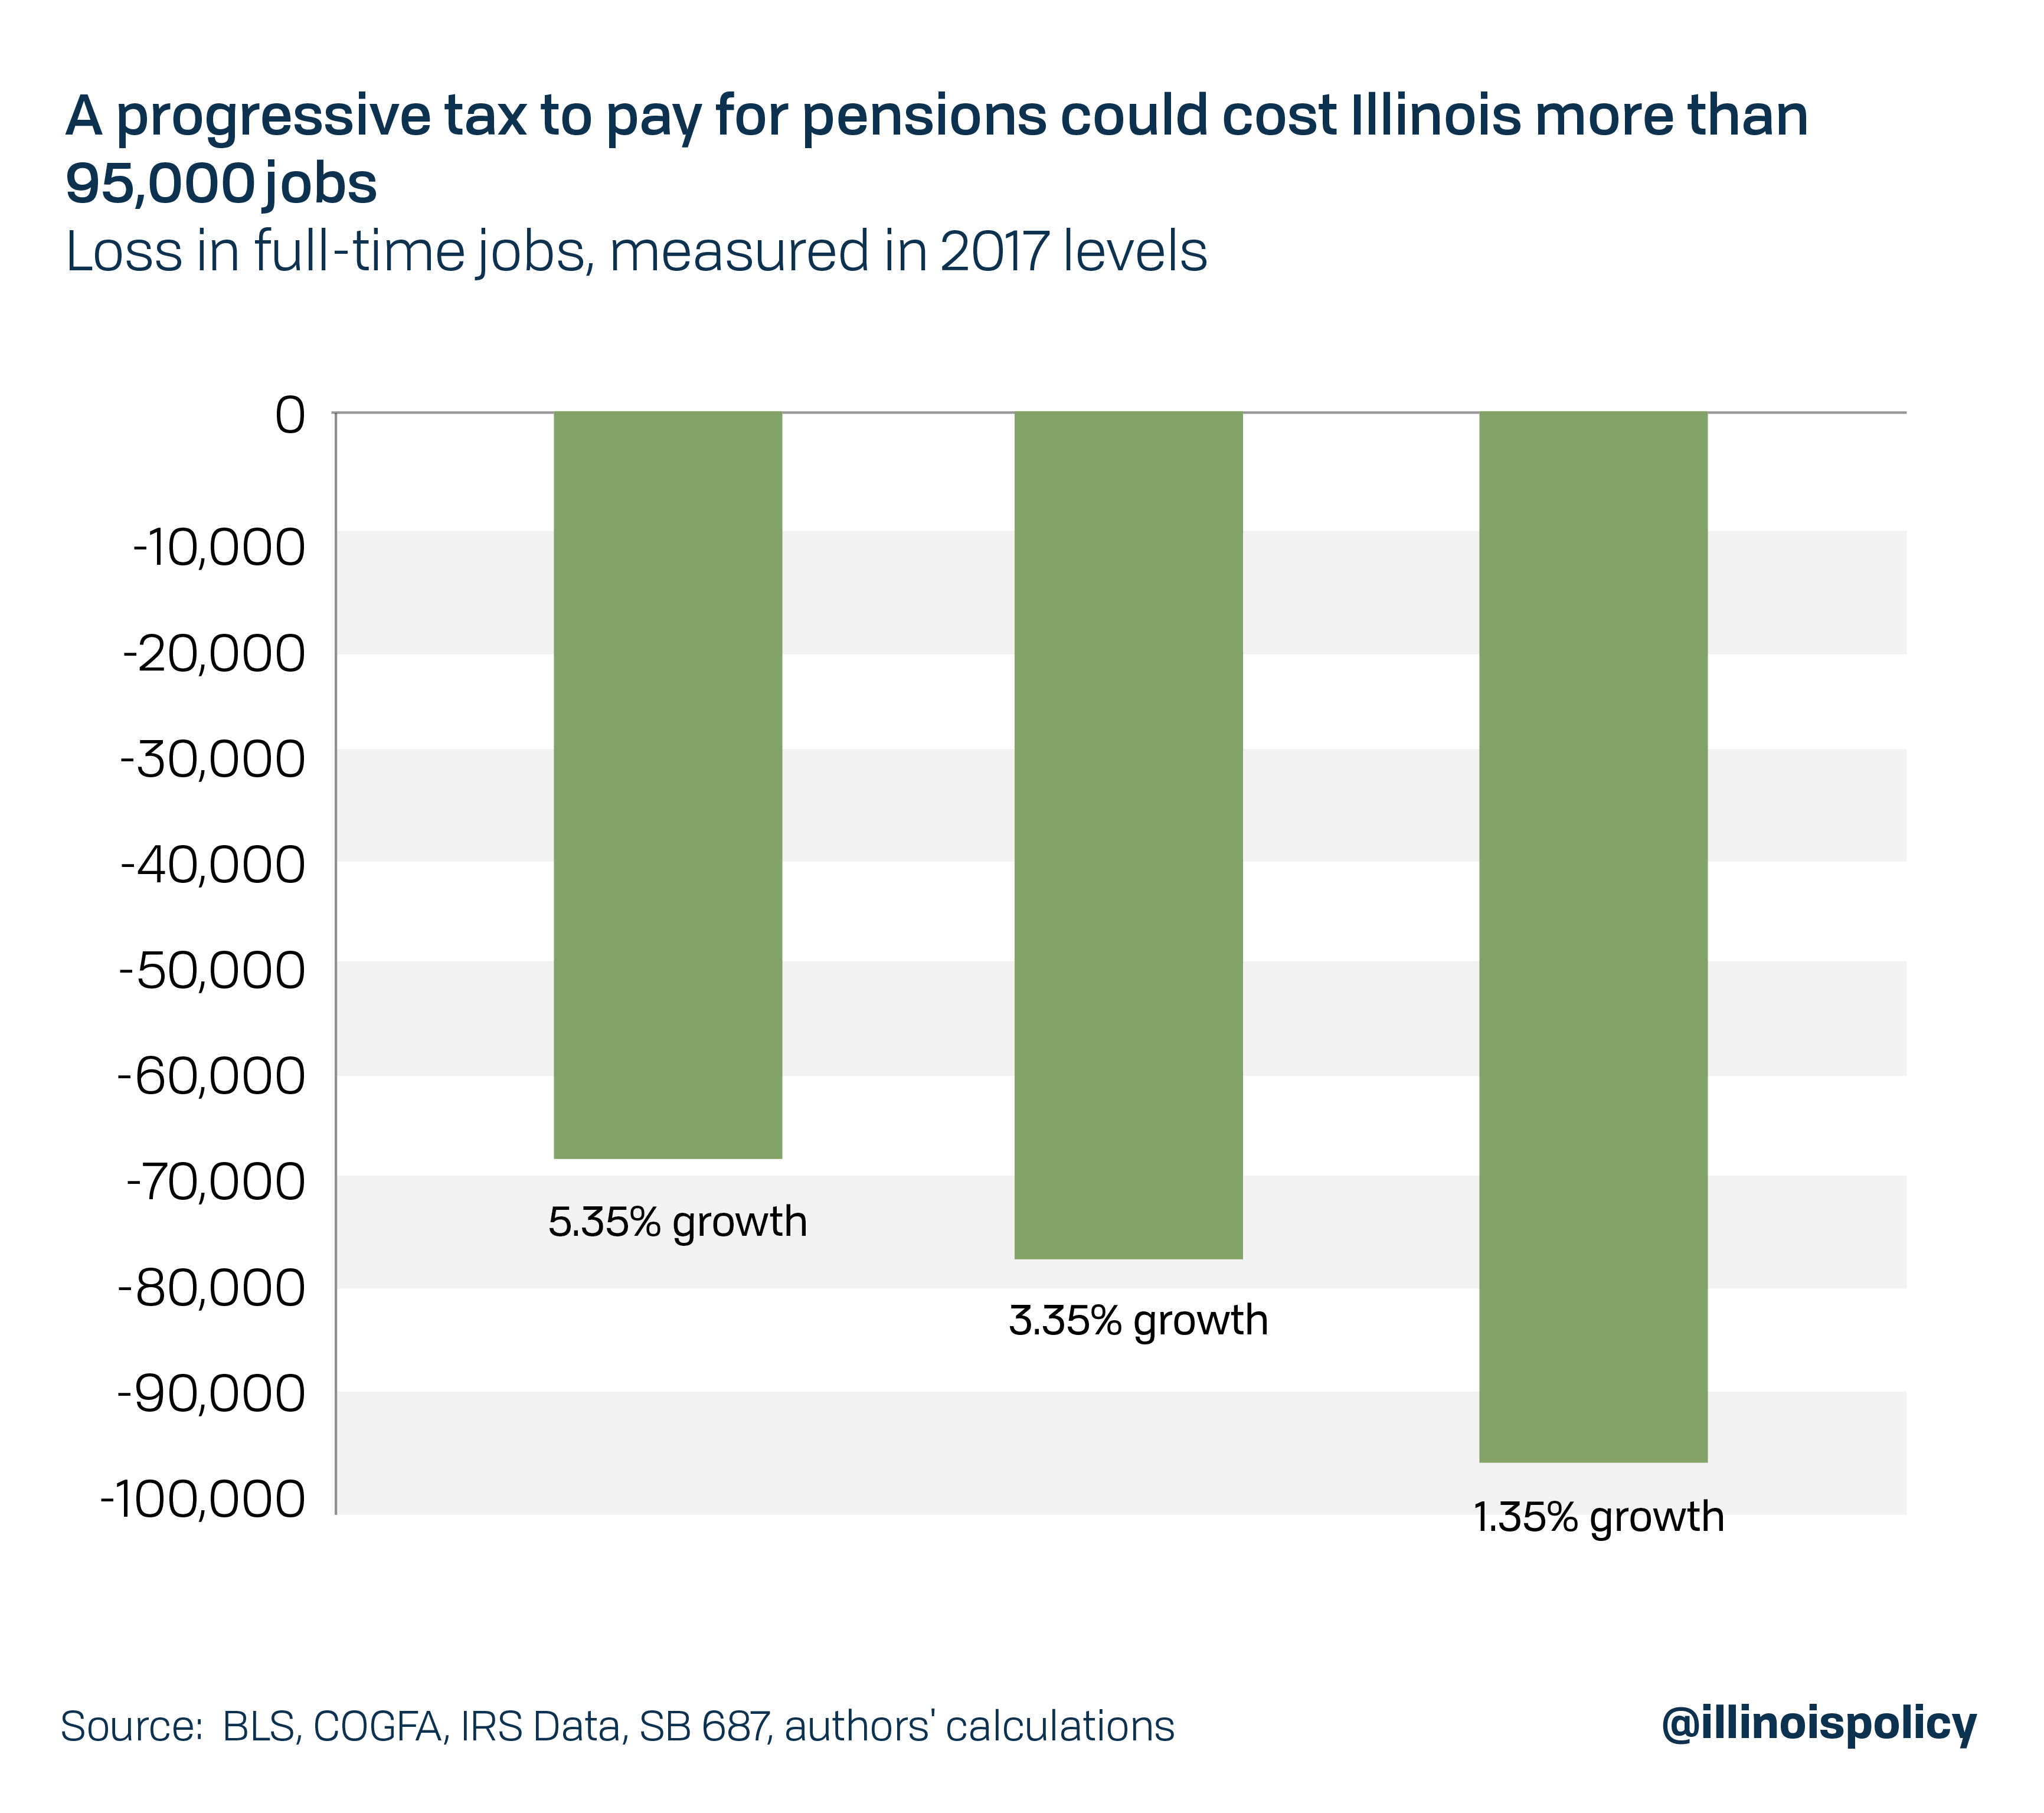 A progressive tax to pay for pensions could cost Illinois more than 95,000 jobs